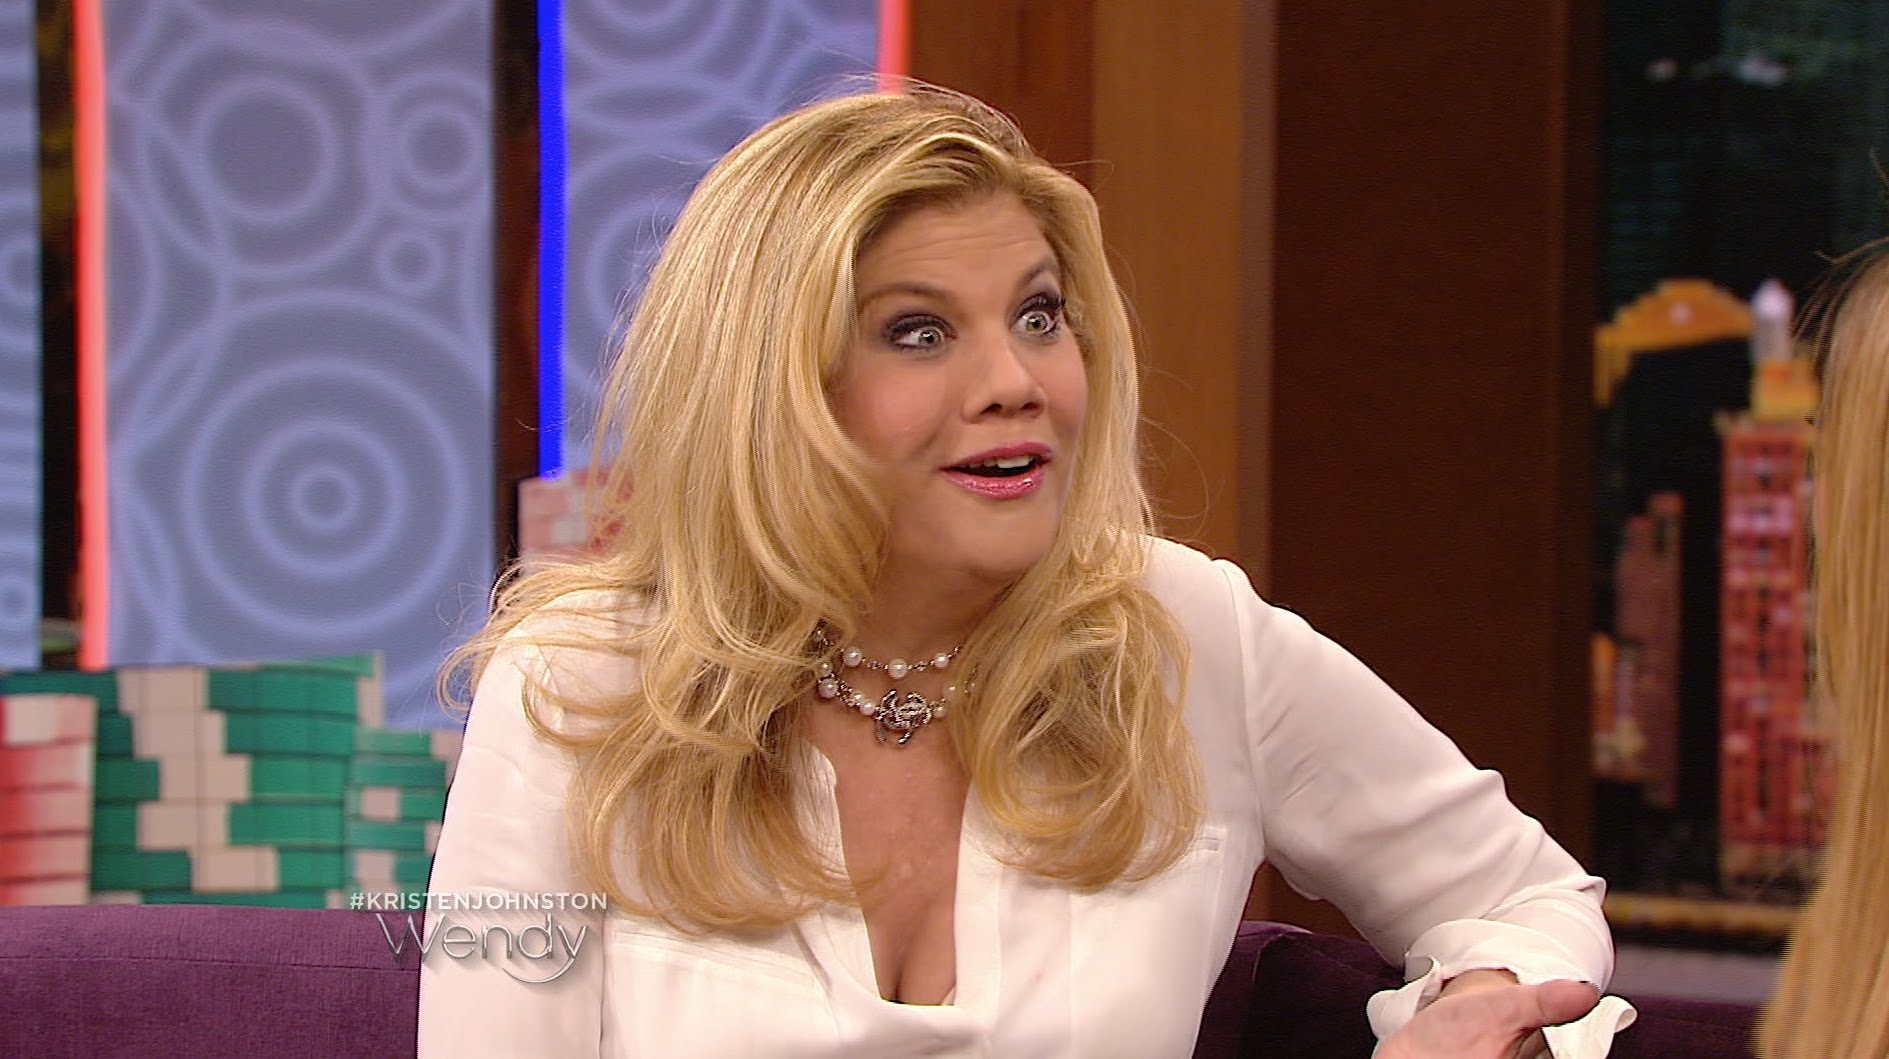 Kristen Johnston Screensavers